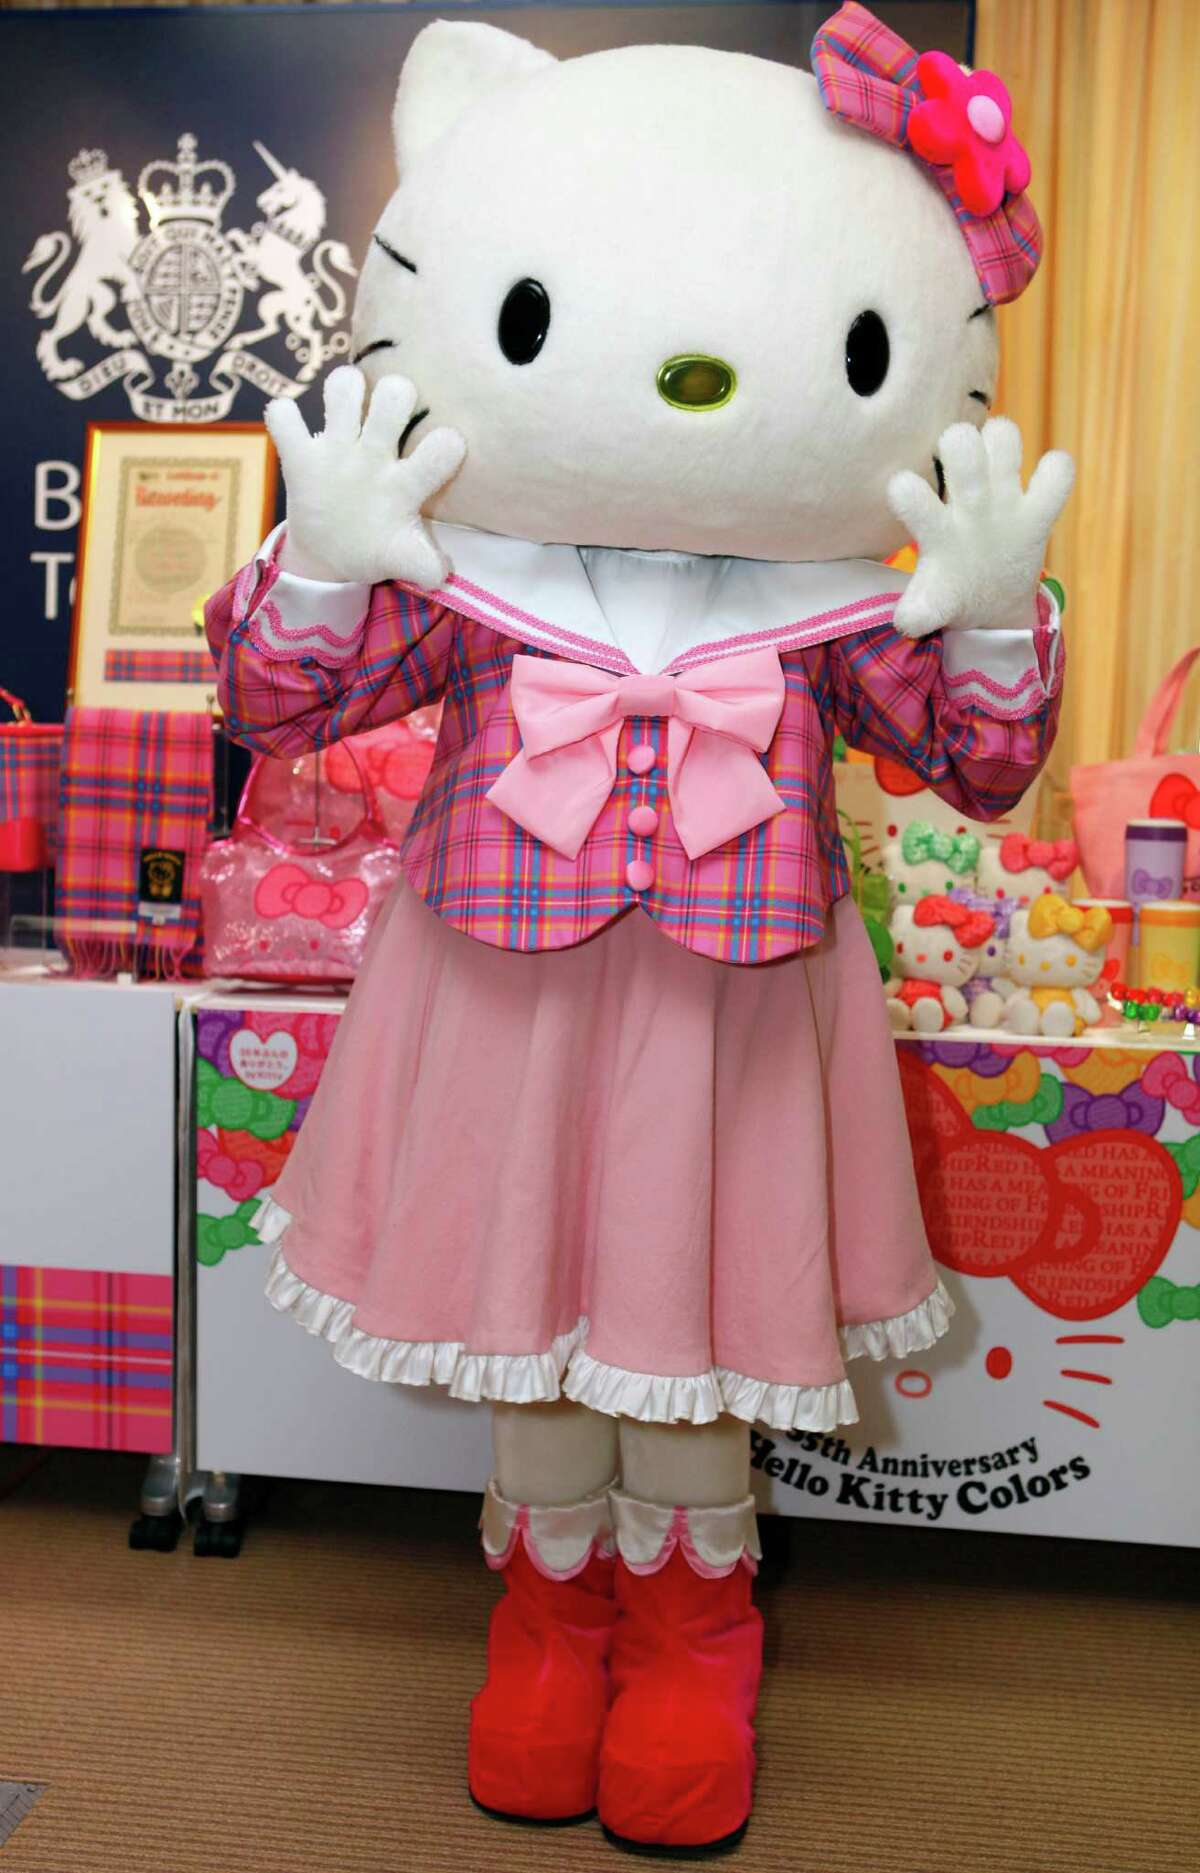 FILE - In this June 10, 2009 file photo, Hello Kitty poses in its original tartan blouse and ribbon during a news conference to unveil